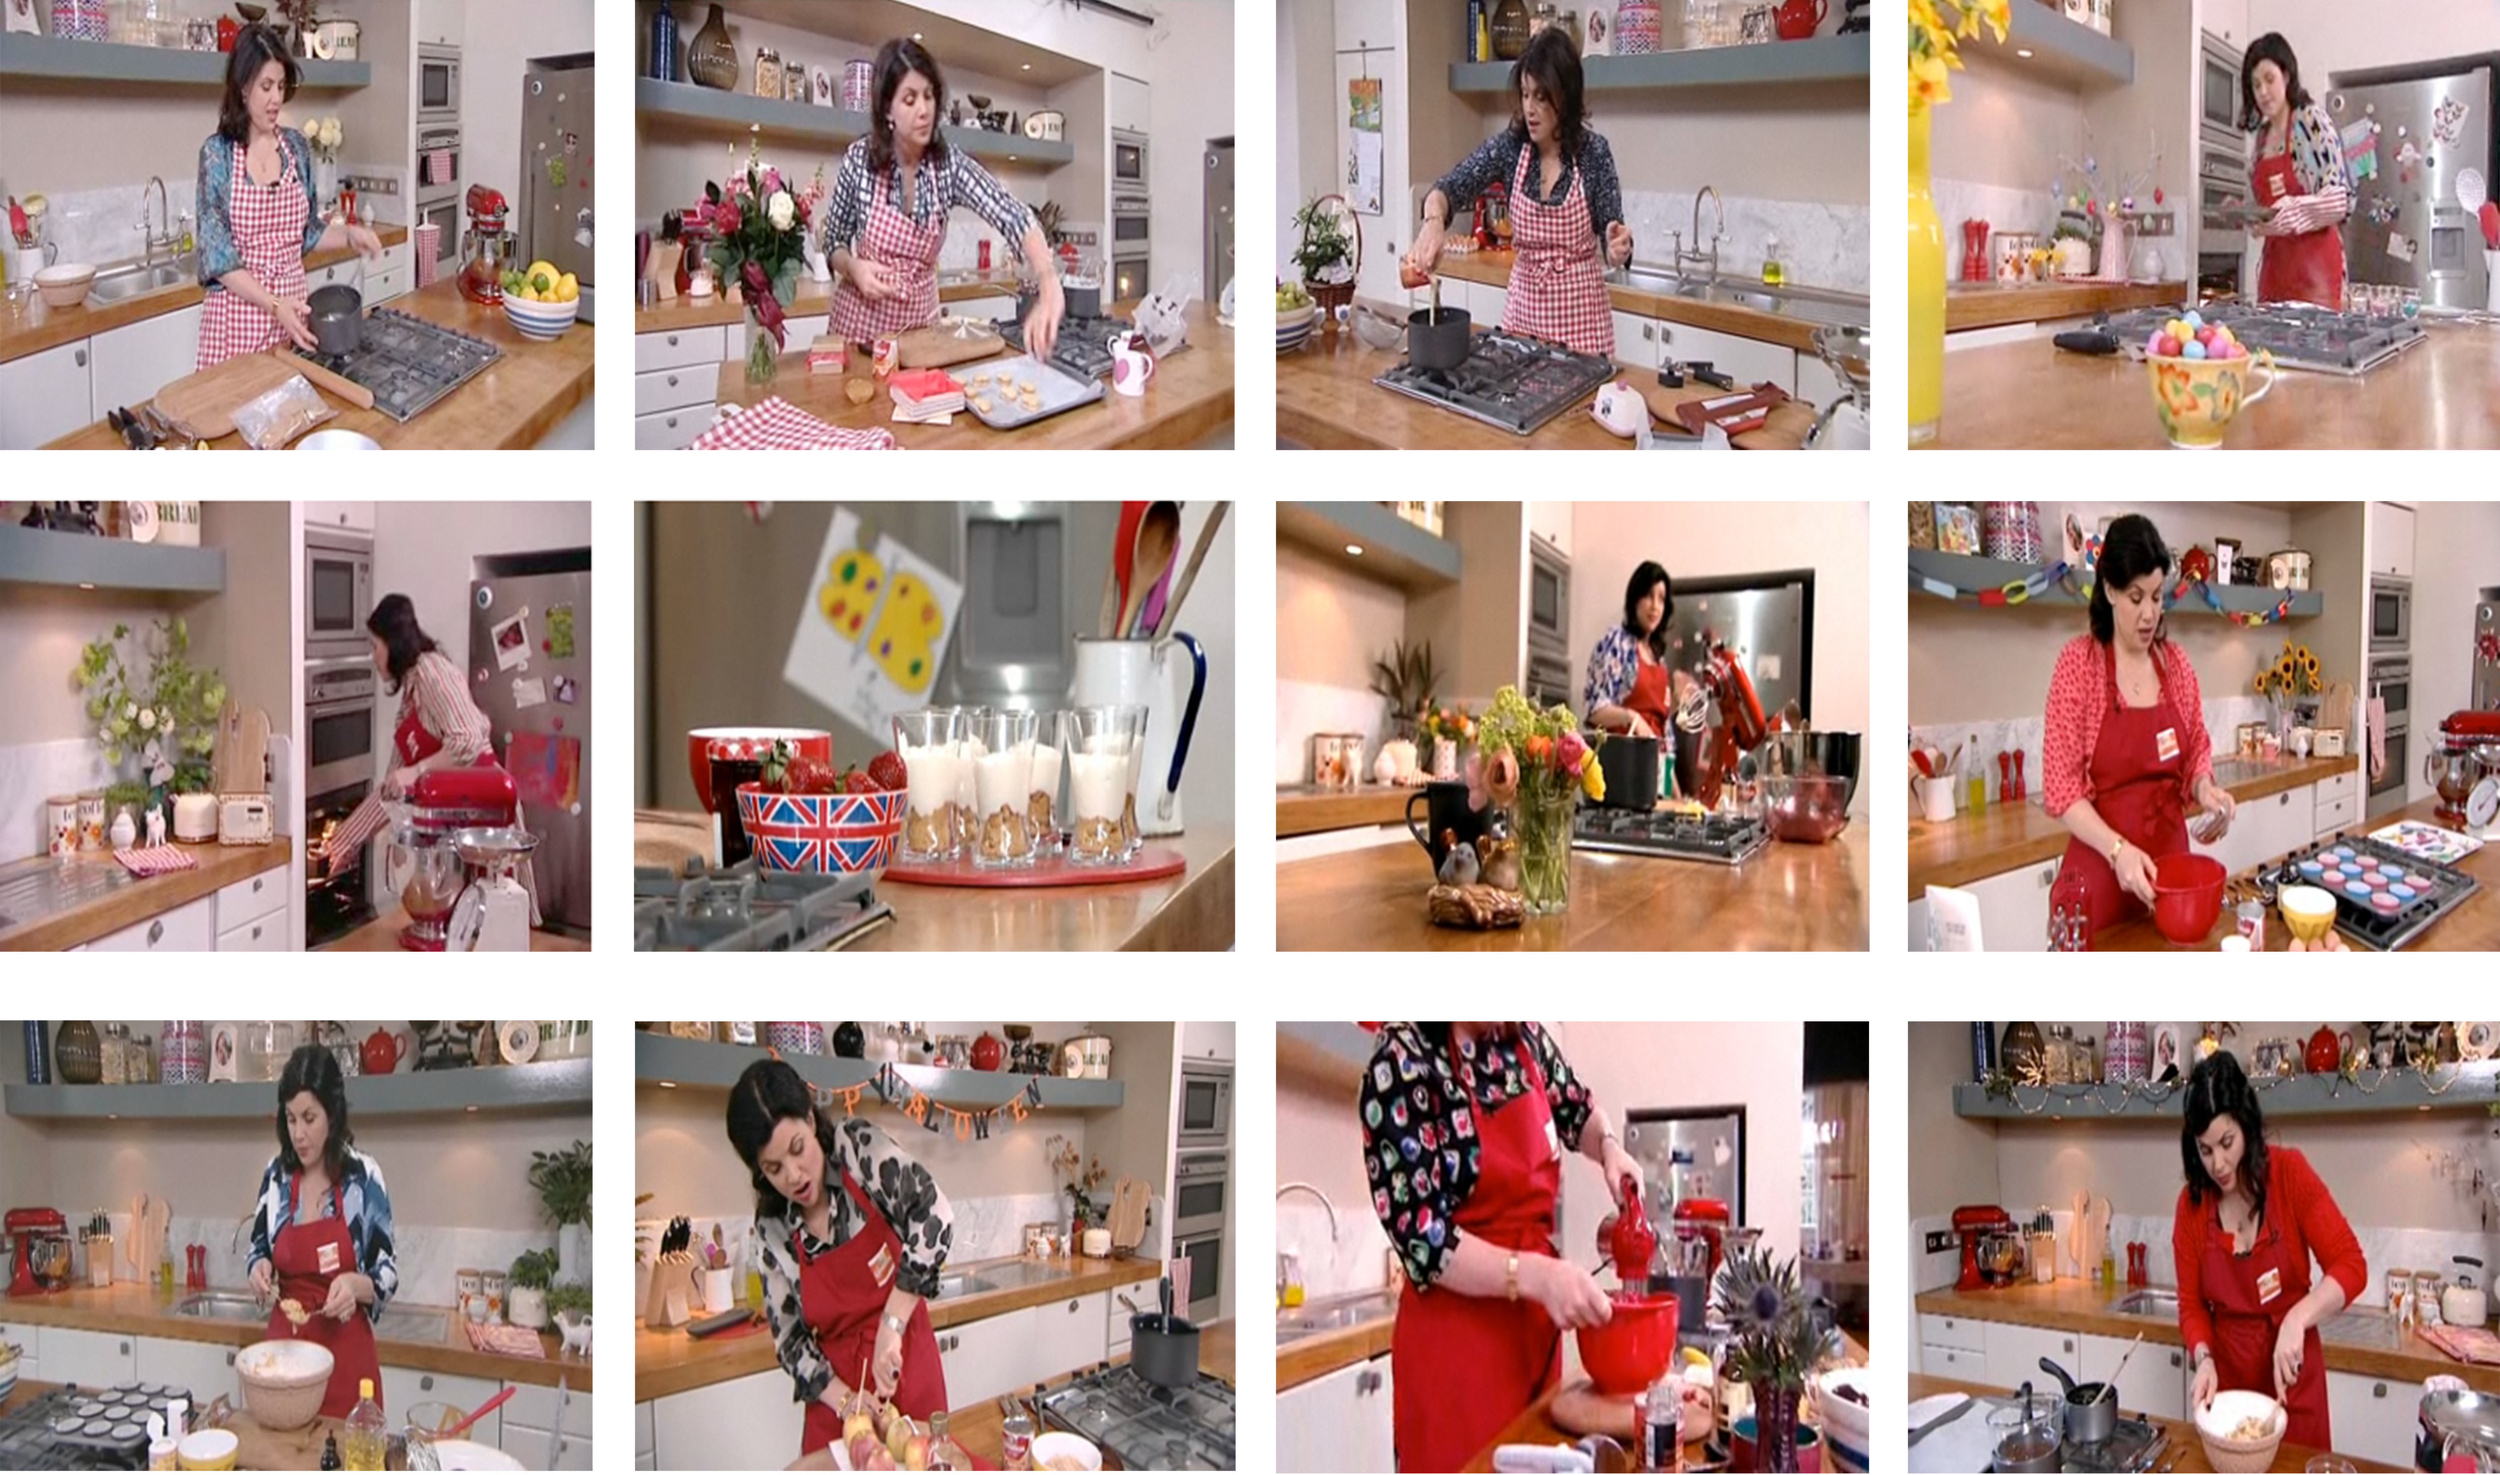 """Nestle Carnation Pudcasts  Starring Kirstie Allsop; stills from twelve """"pudcast"""" recipes made using Carnation condensed cream, with each recipe (and set) designed to represent a key theme or event from every month of the year"""